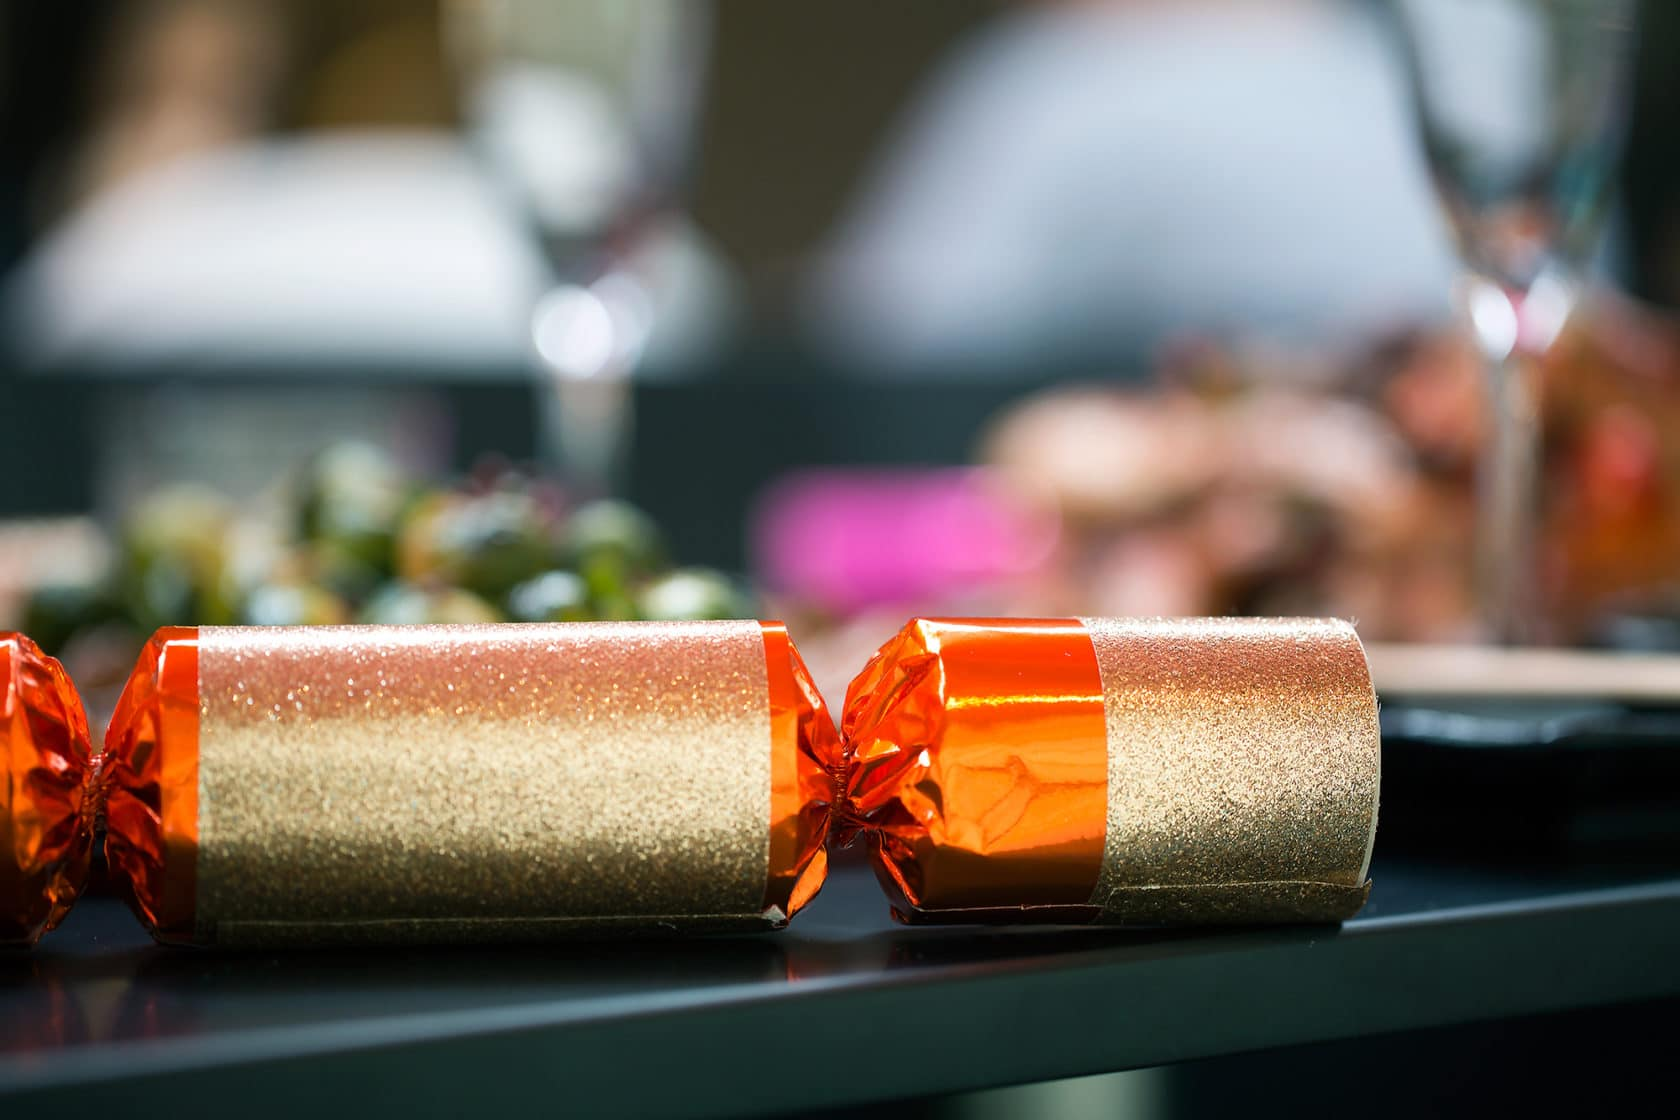 Brighton Restaurant Guide - picture of Christmas cracker taken at Moshimo